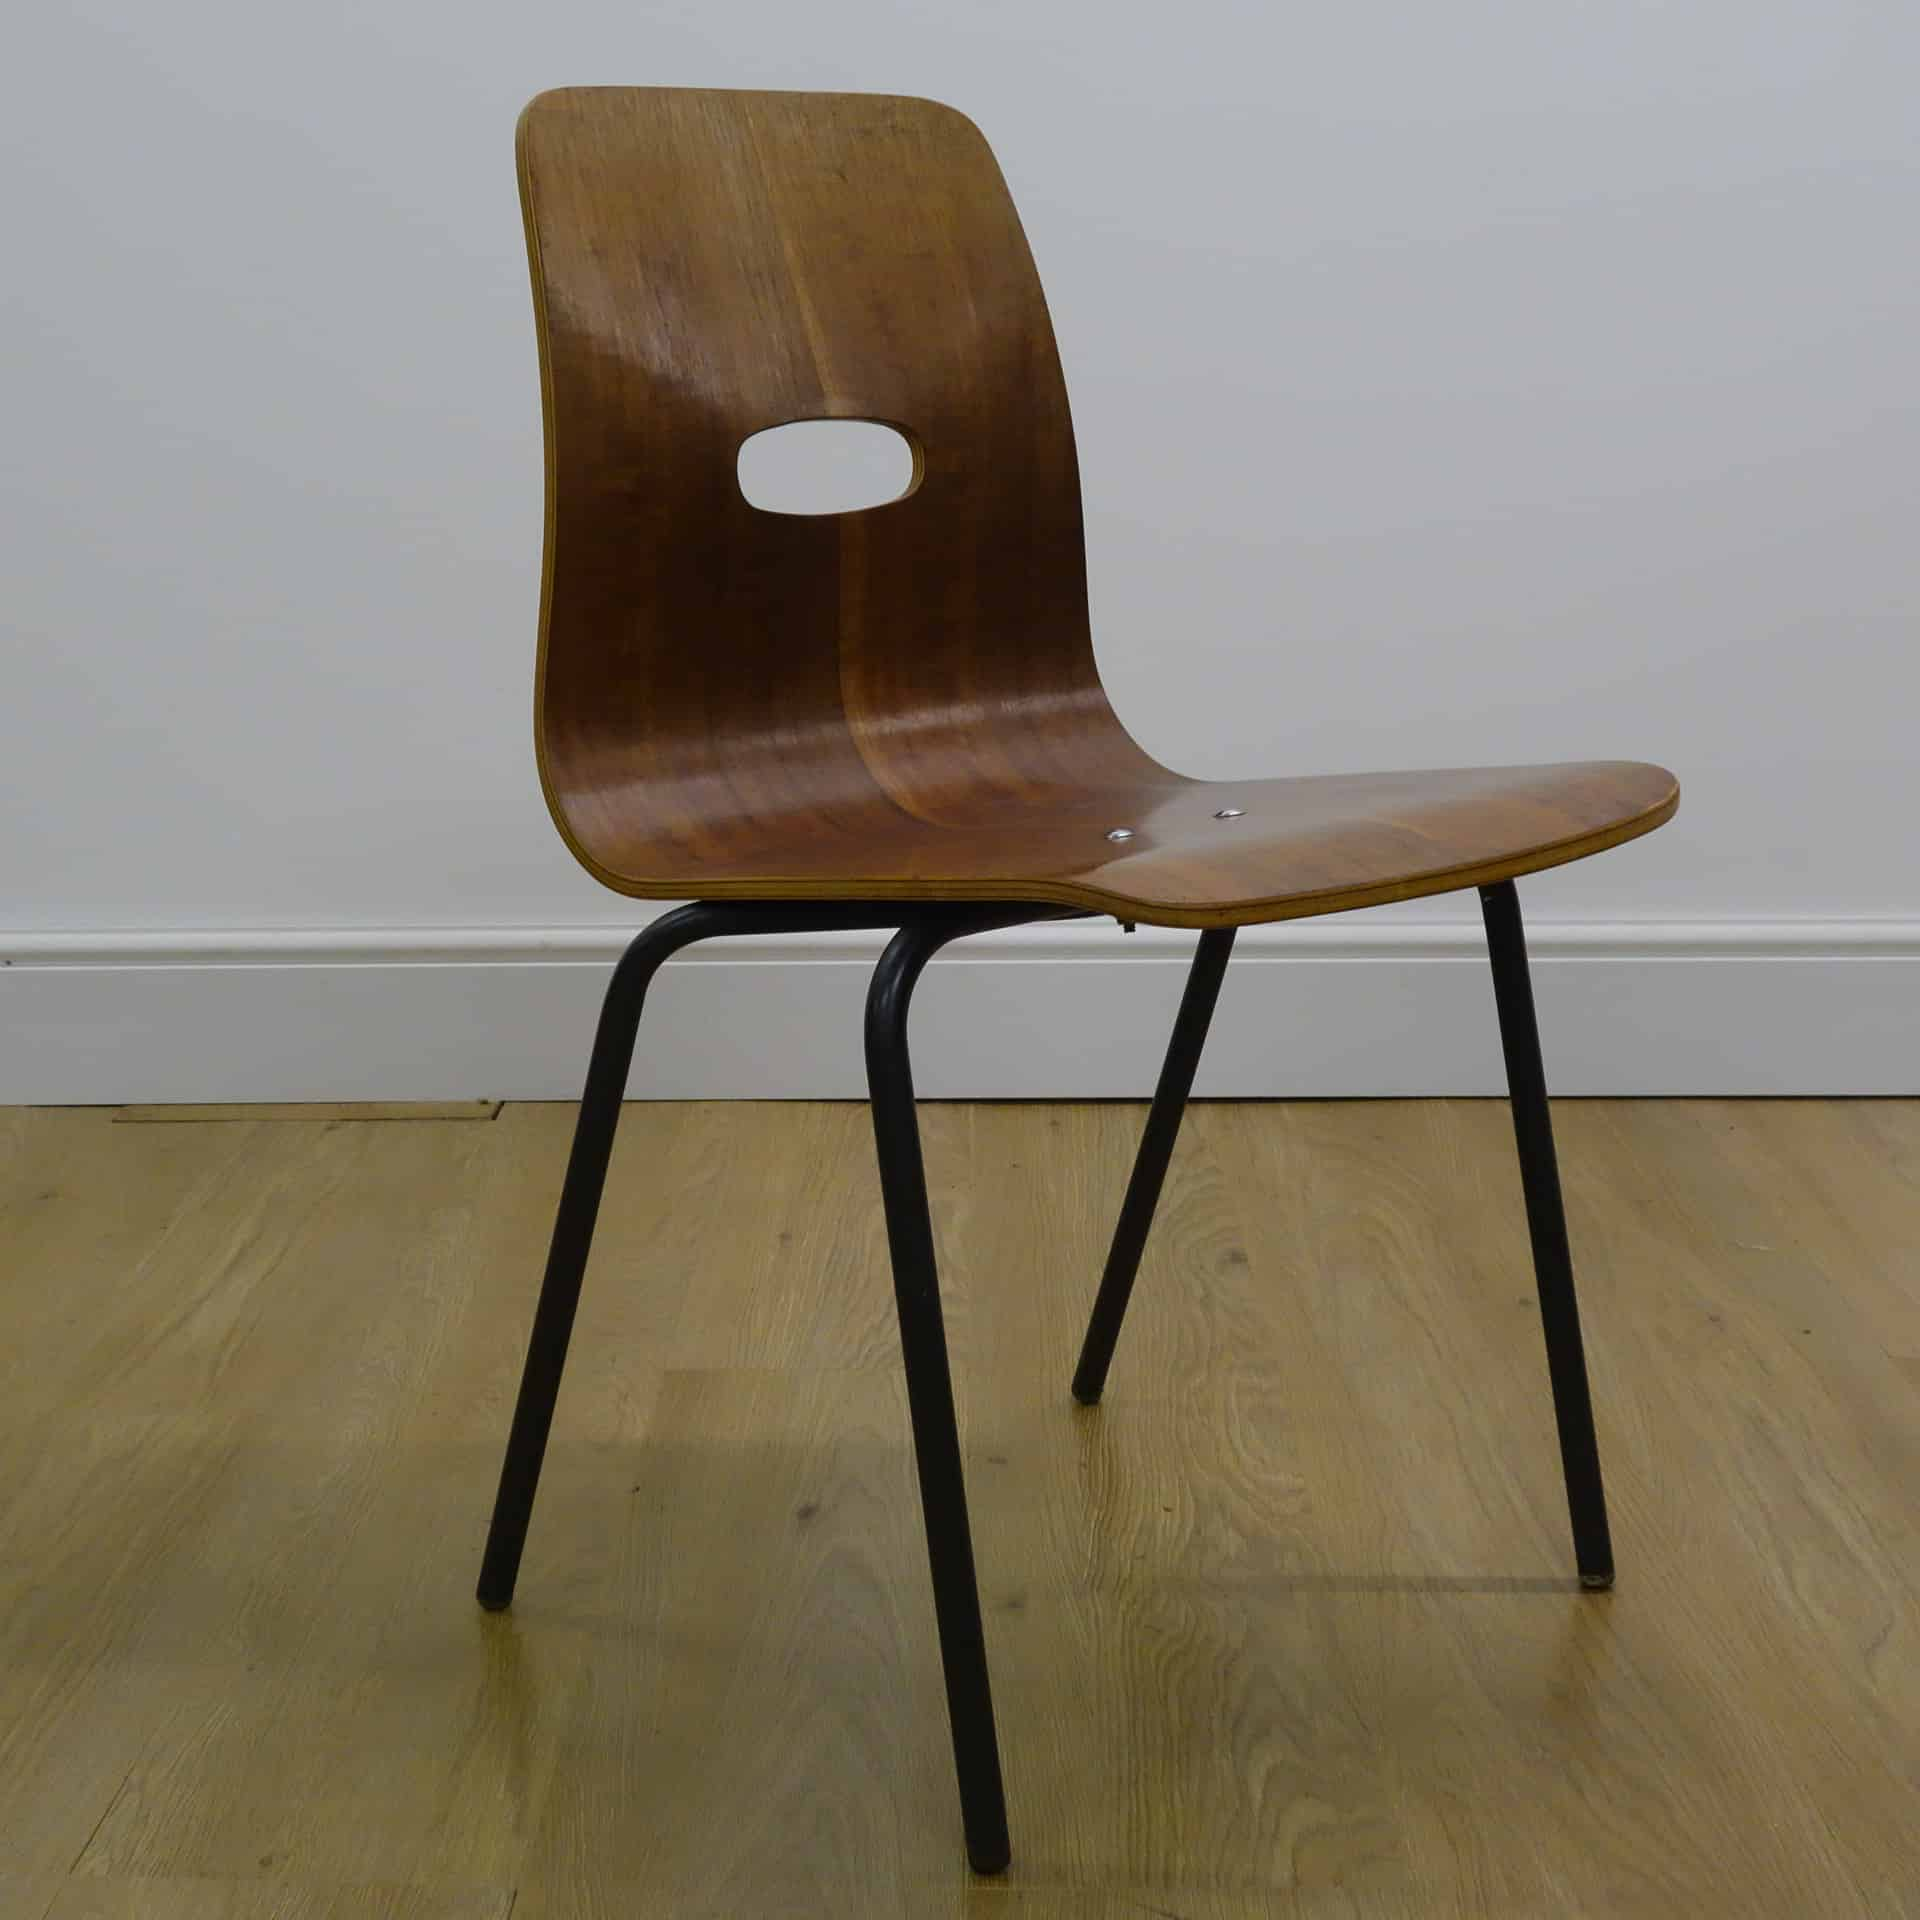 1950s Q stak chair by Robin Day